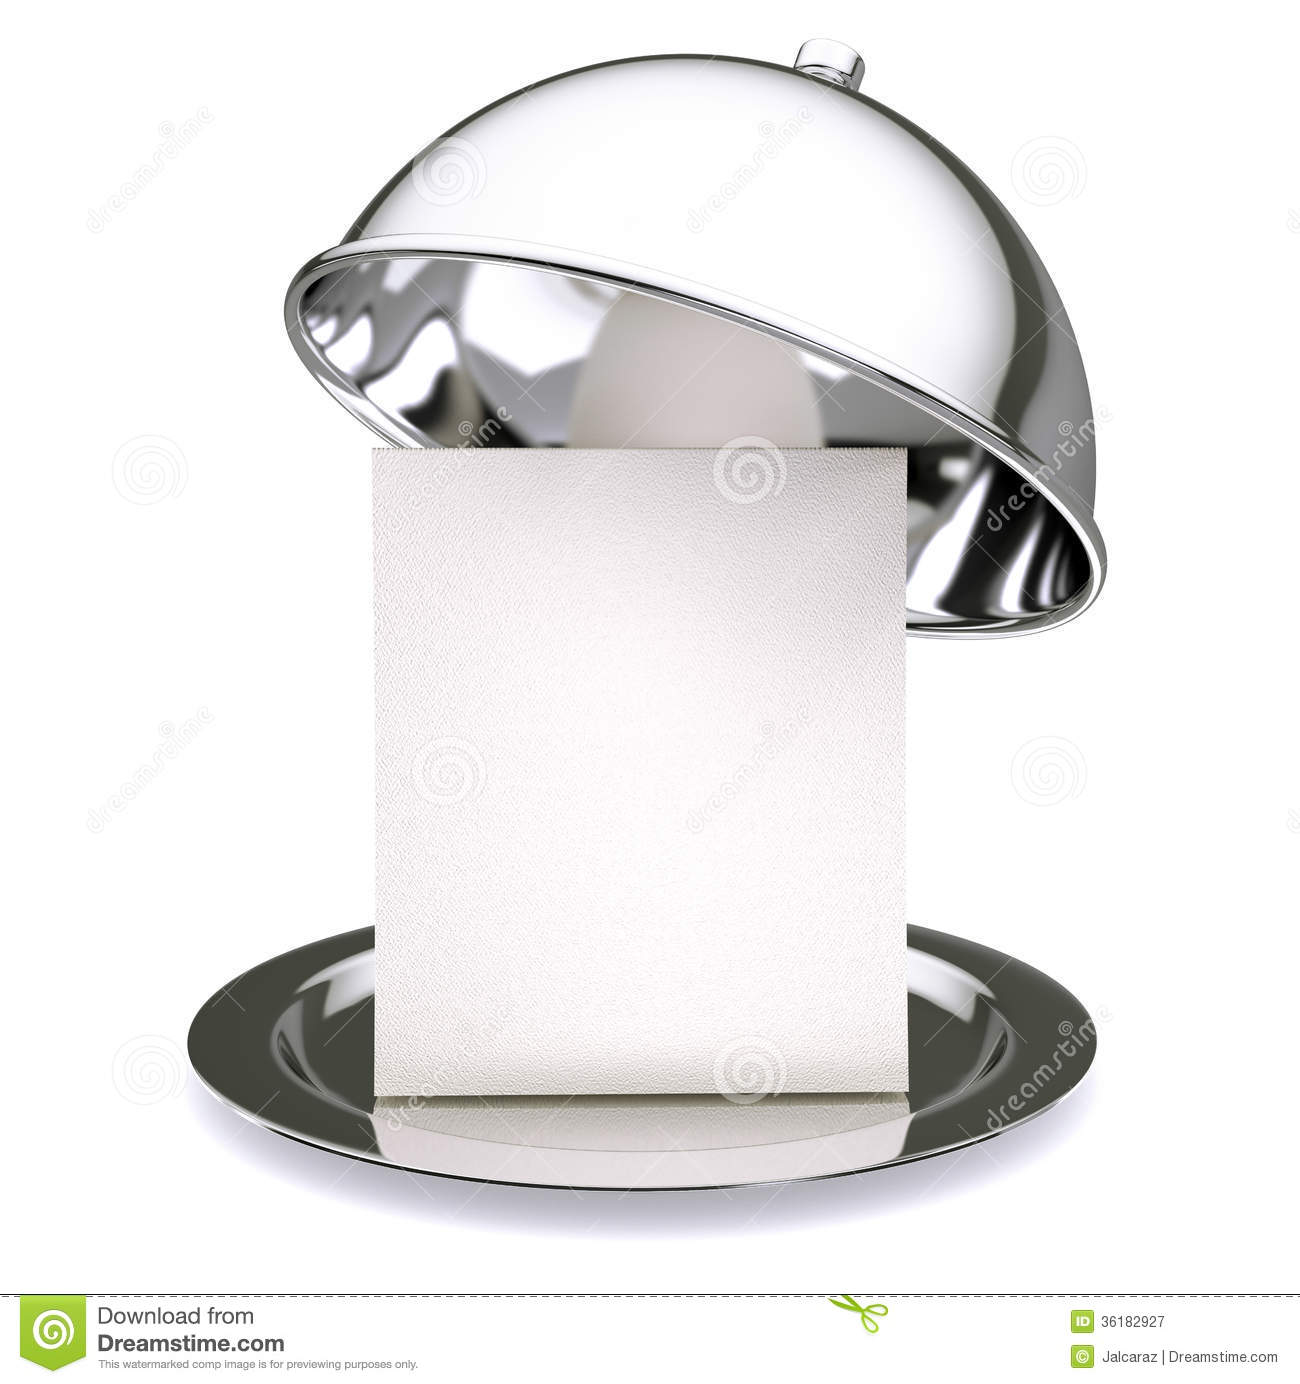 Cloche de restaurant photographie stock libre de droits - Cloche de cuisine ...